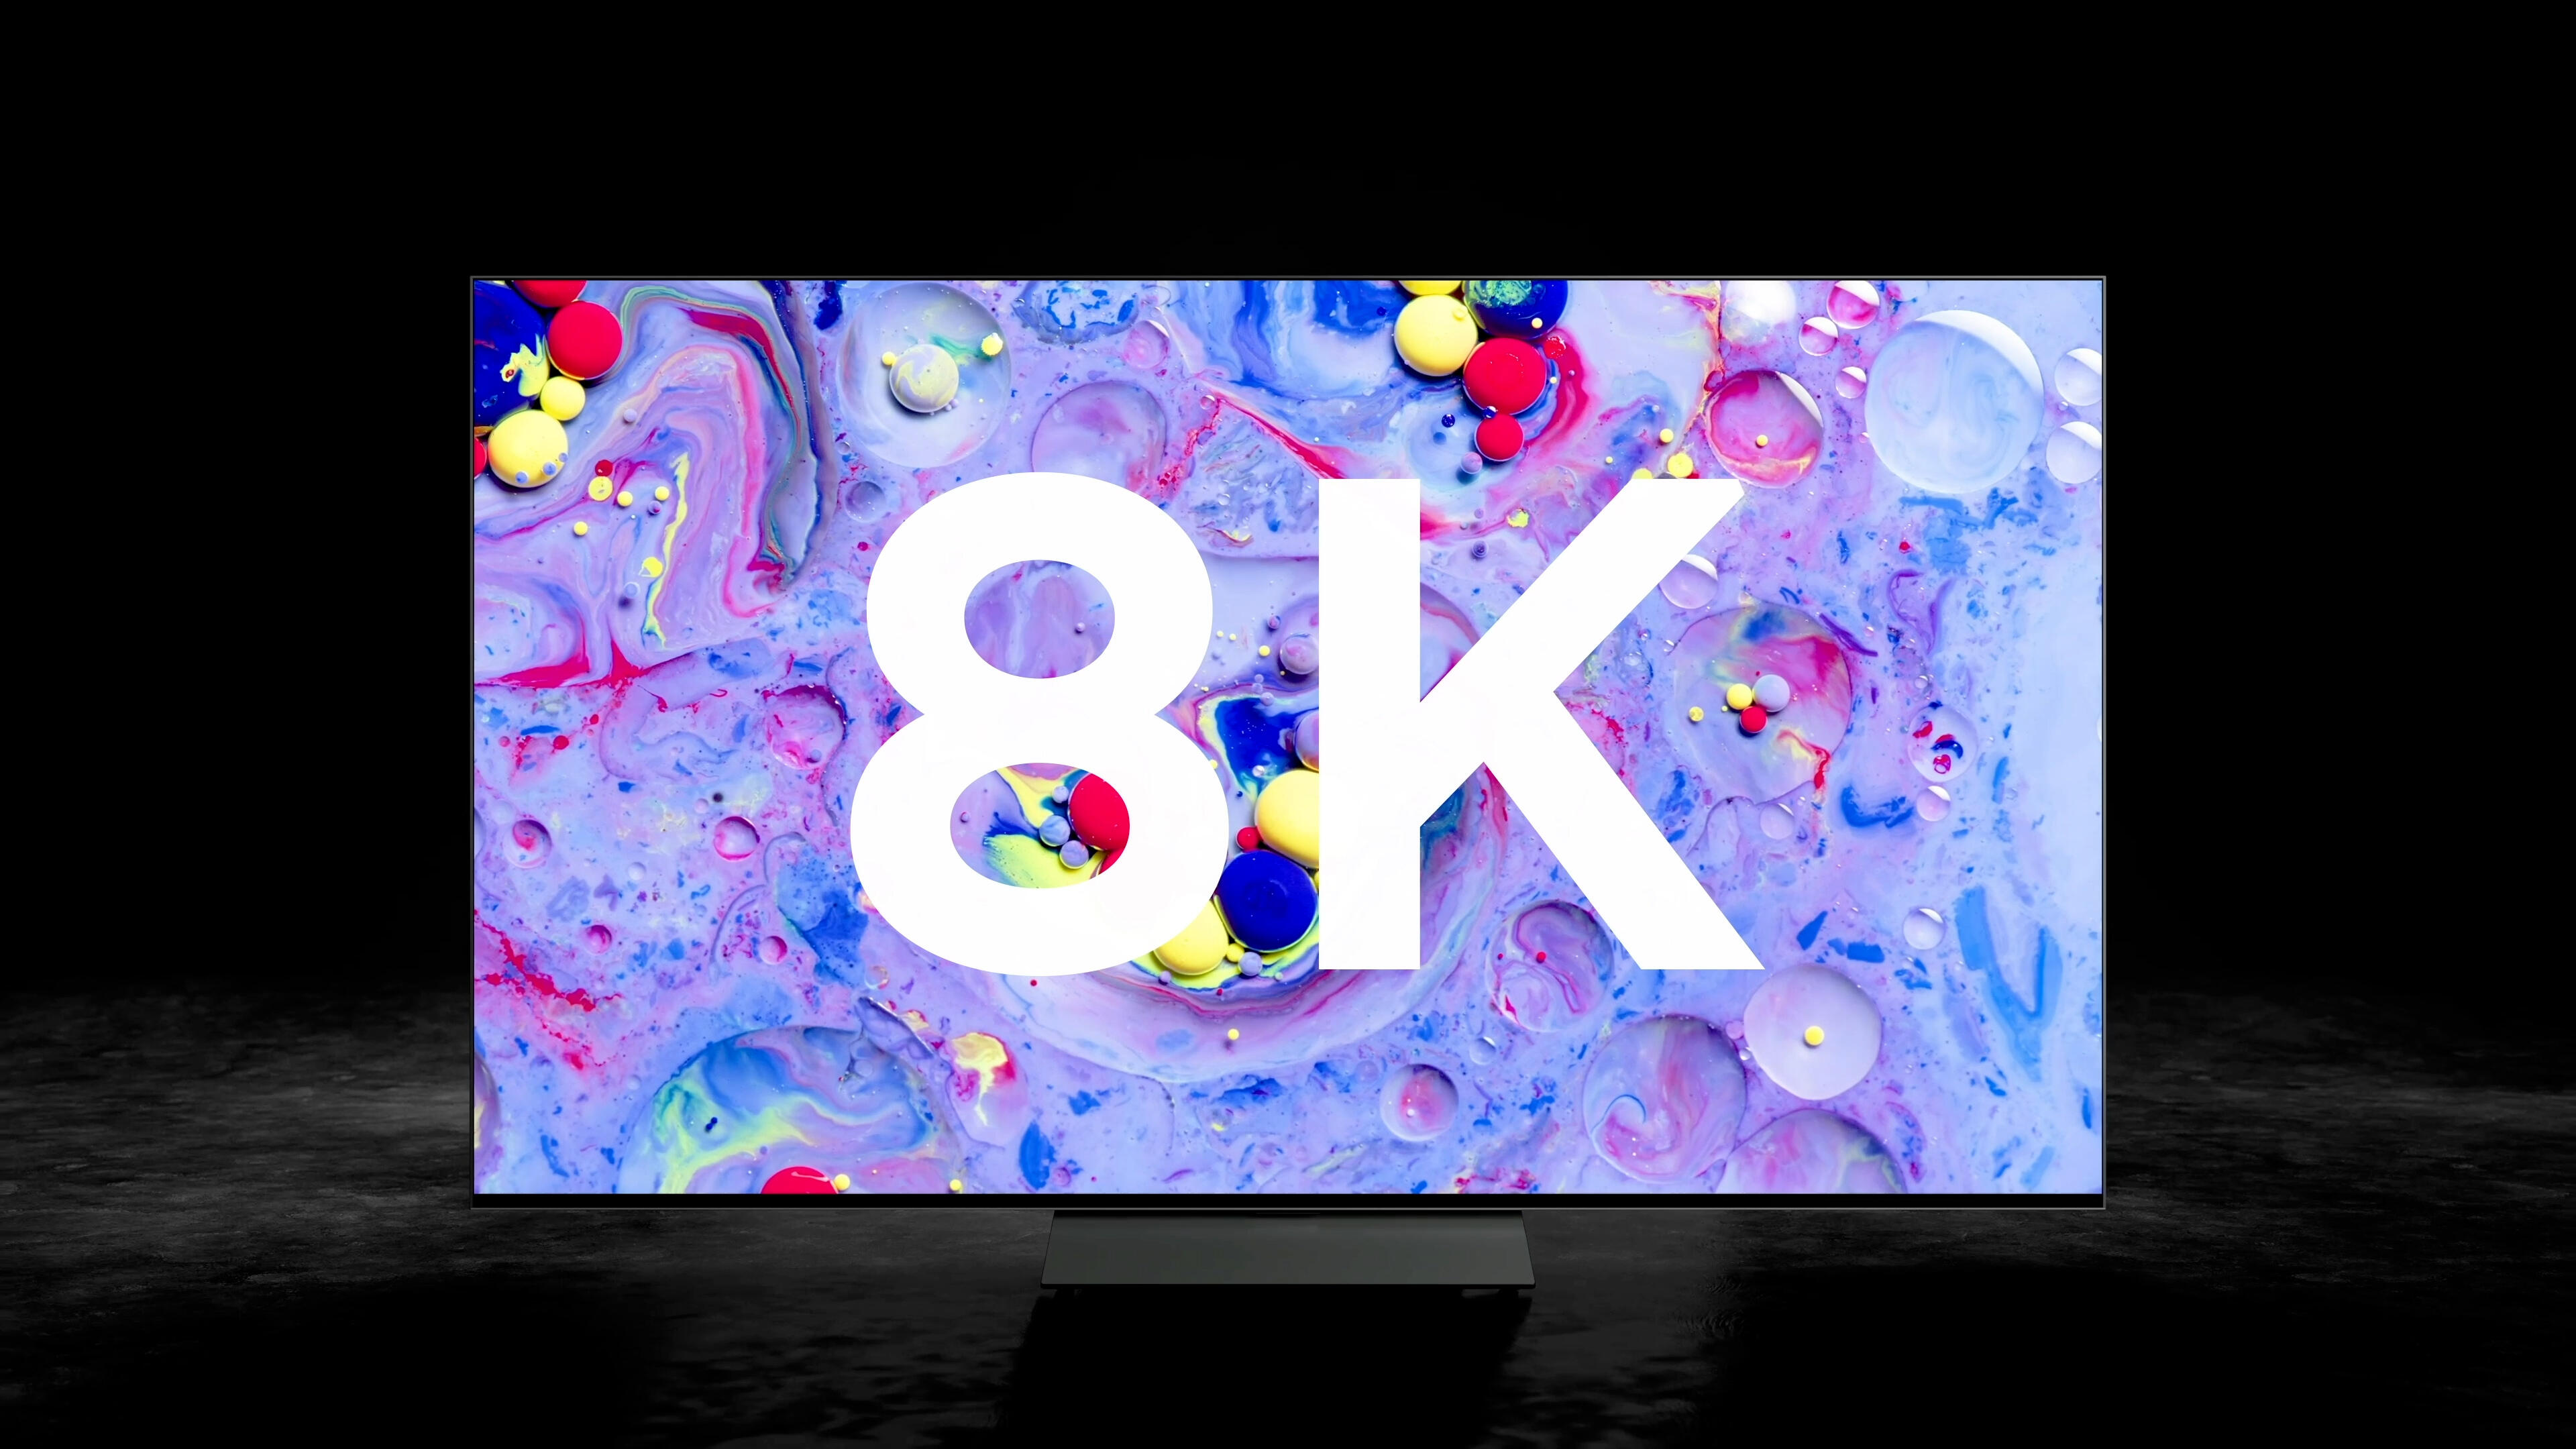 Video: TCL brings 8K resolution to its value-conscious 6-Series Roku TVs